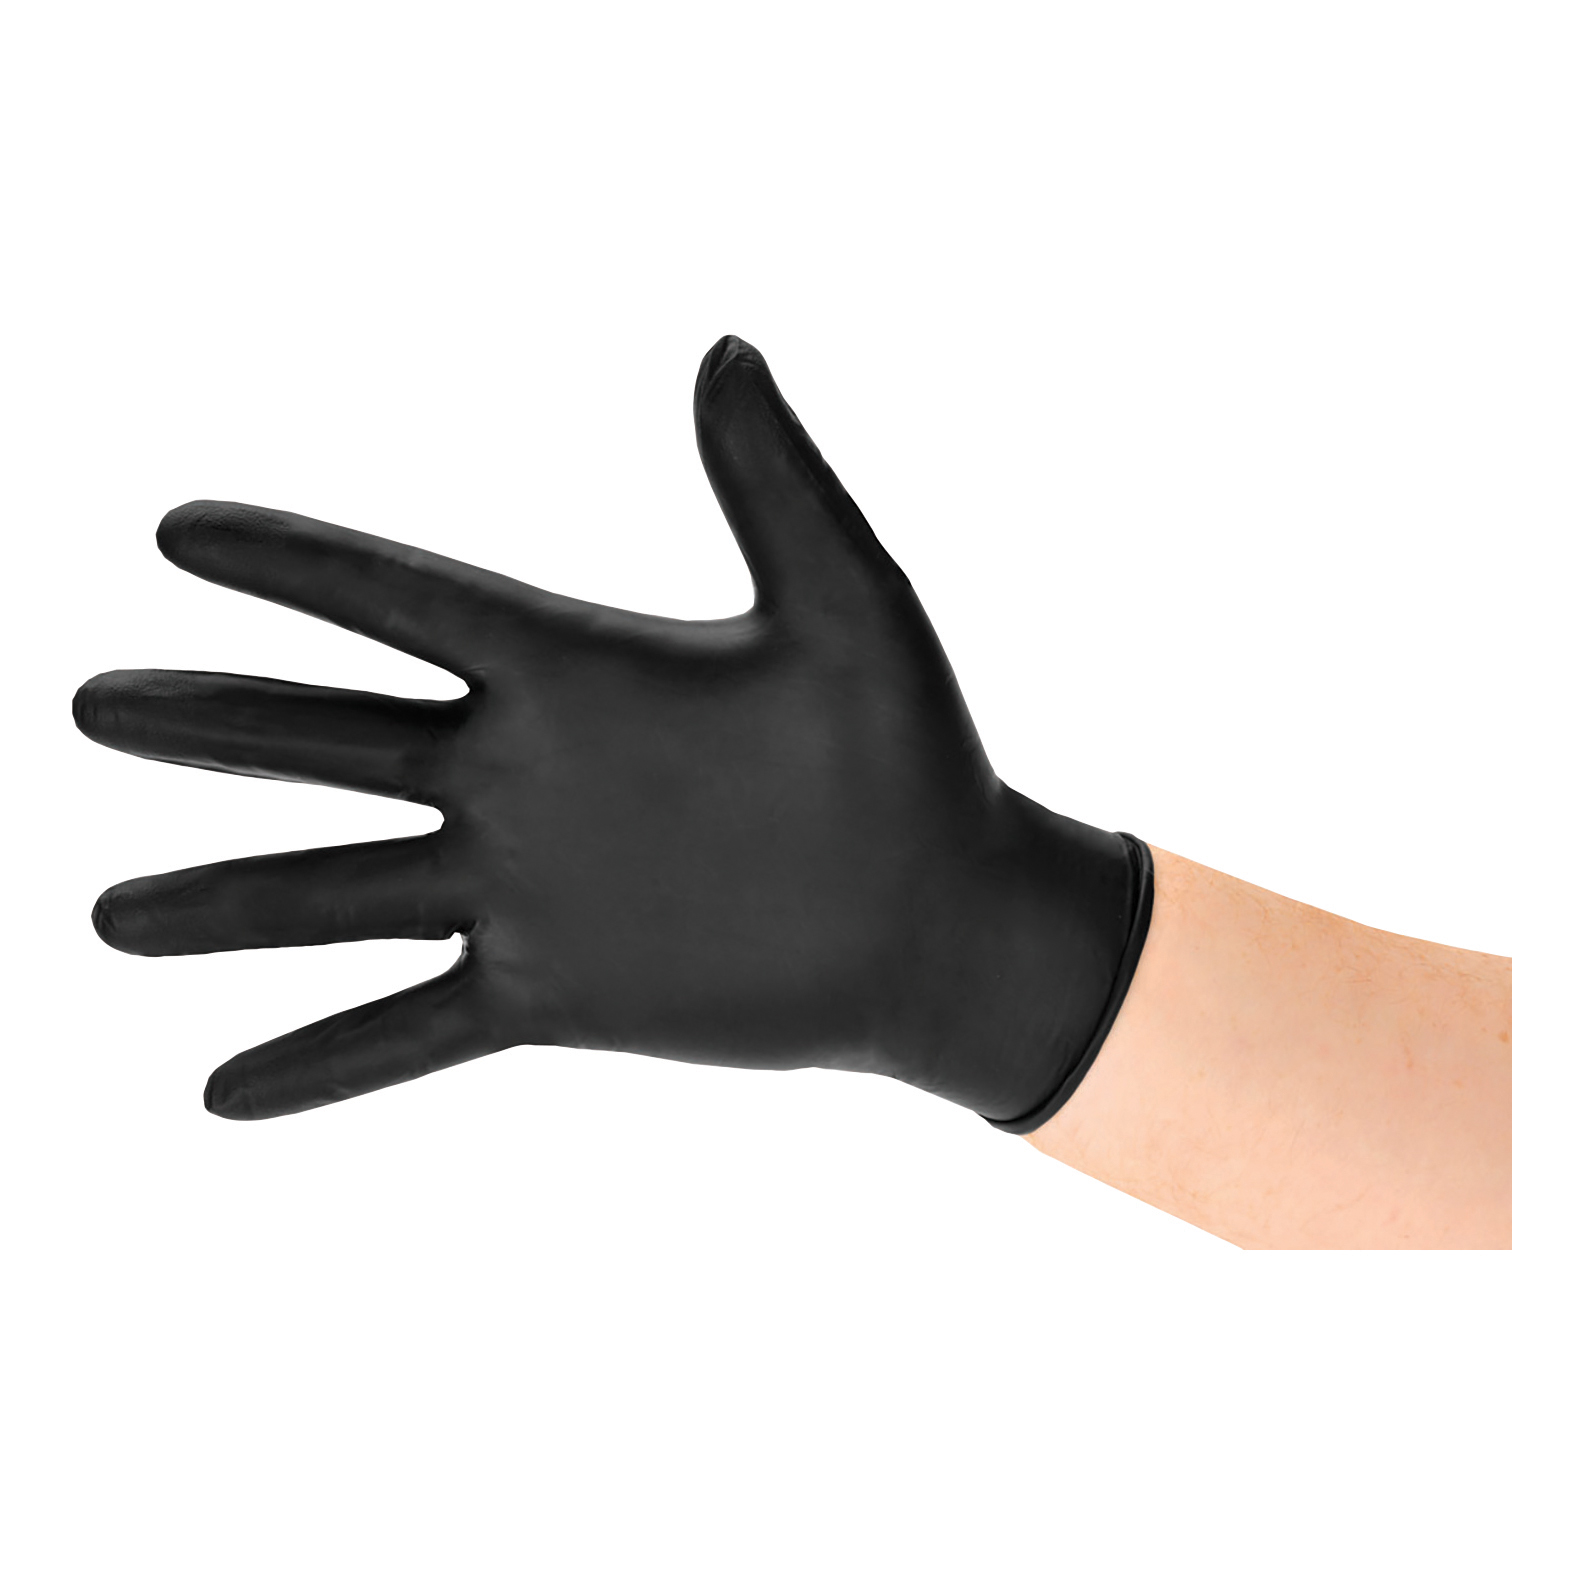 Nitrile Gloves Abrasion-resistance Rolled-cuff Medium Black Pack 100